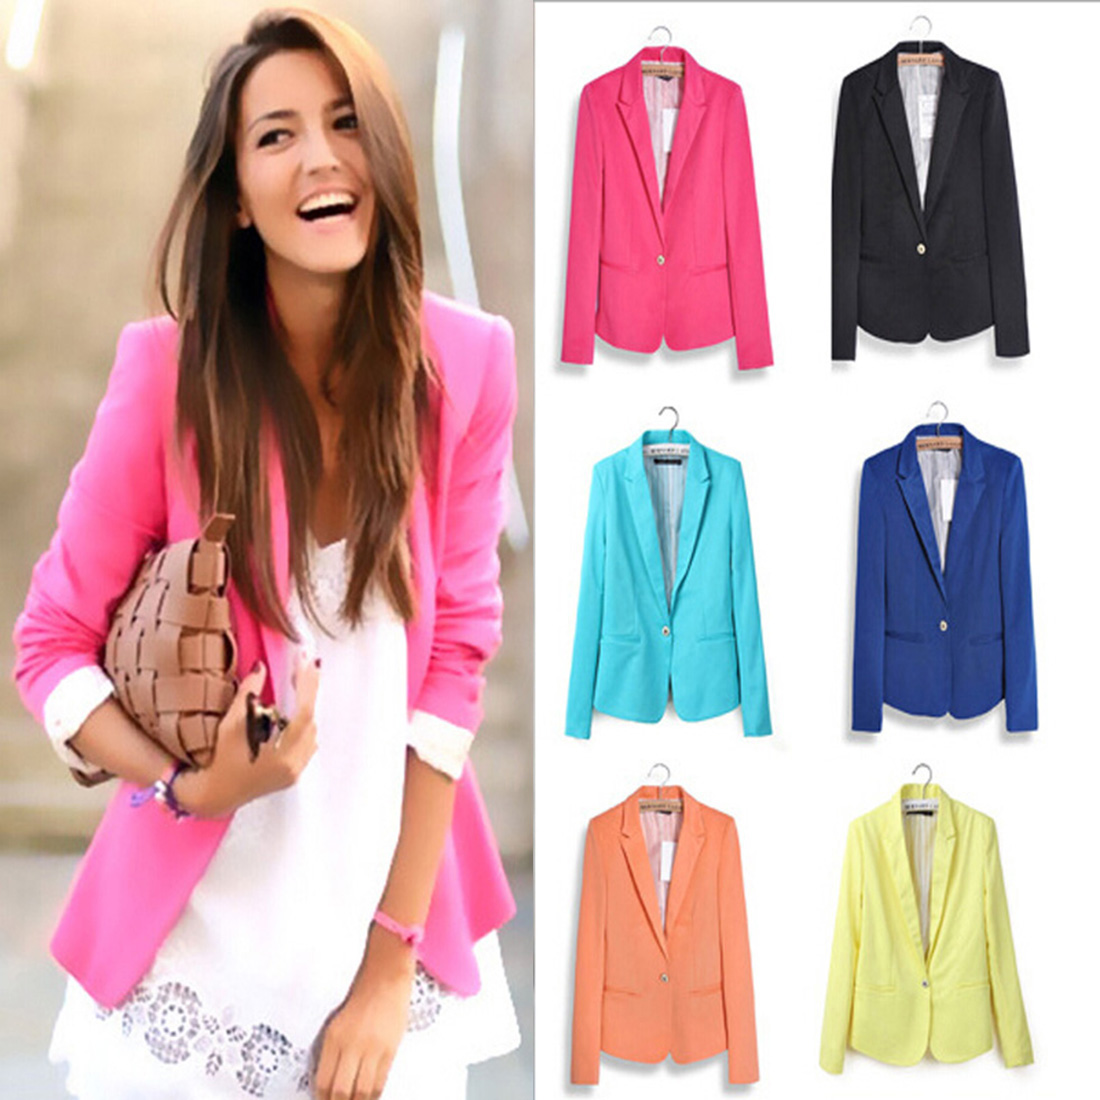 Ladies Blazer Long Sleeve Blaser Women Suit Jacket Female Feminine Blazer Femme Pink Blue Yellow Black Blazer Autumn